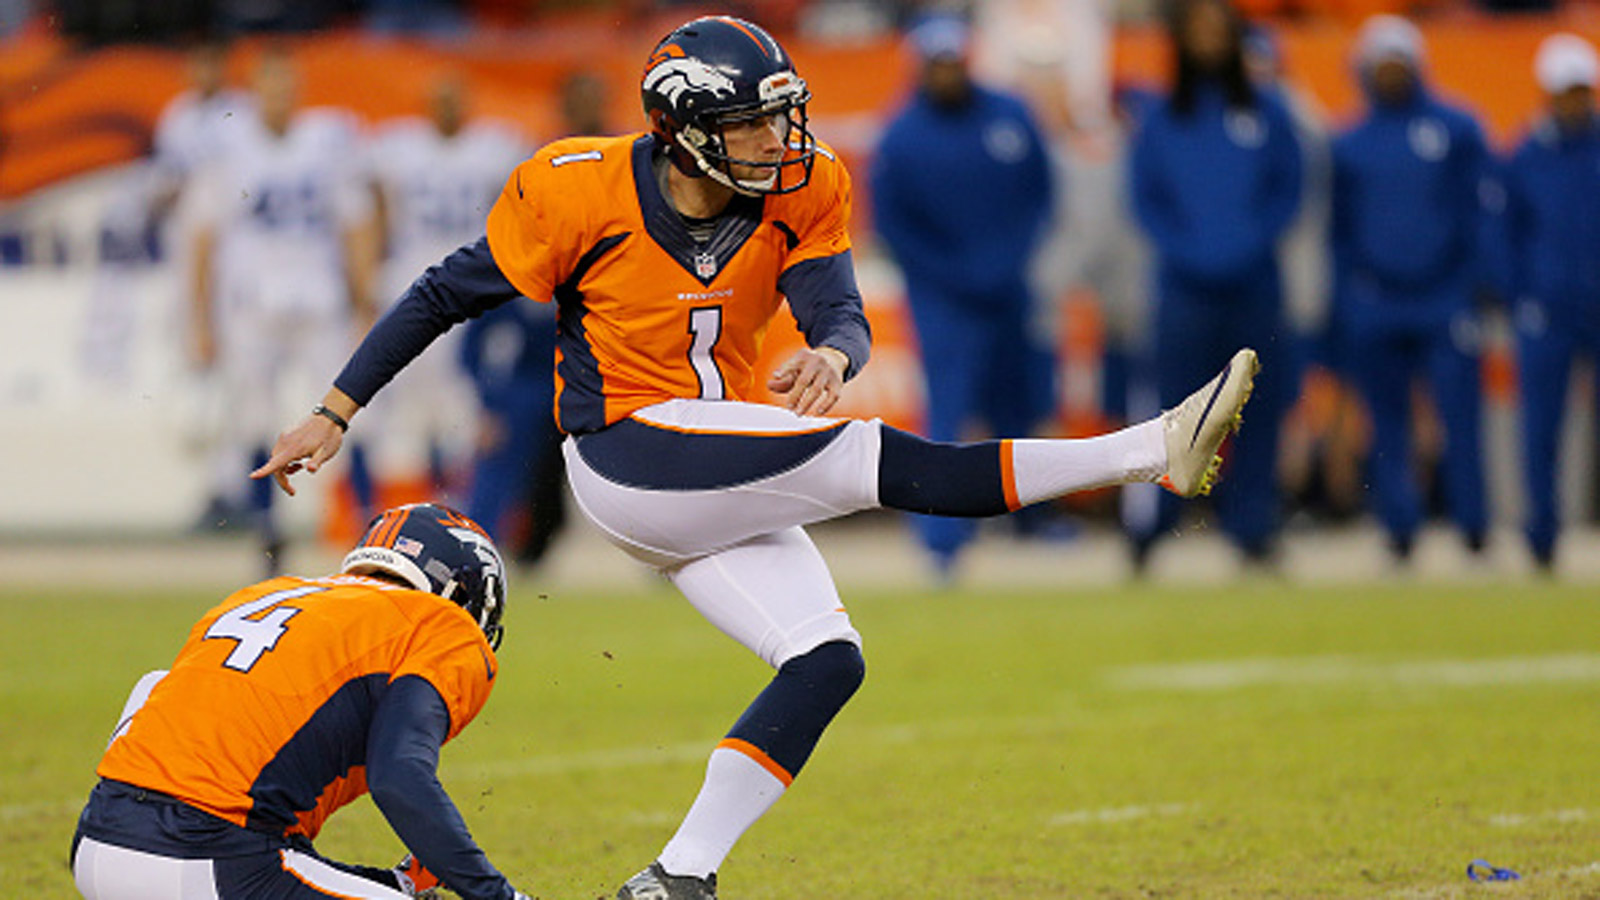 Connor Barth (Photo by Justin Edmonds/Getty Images)